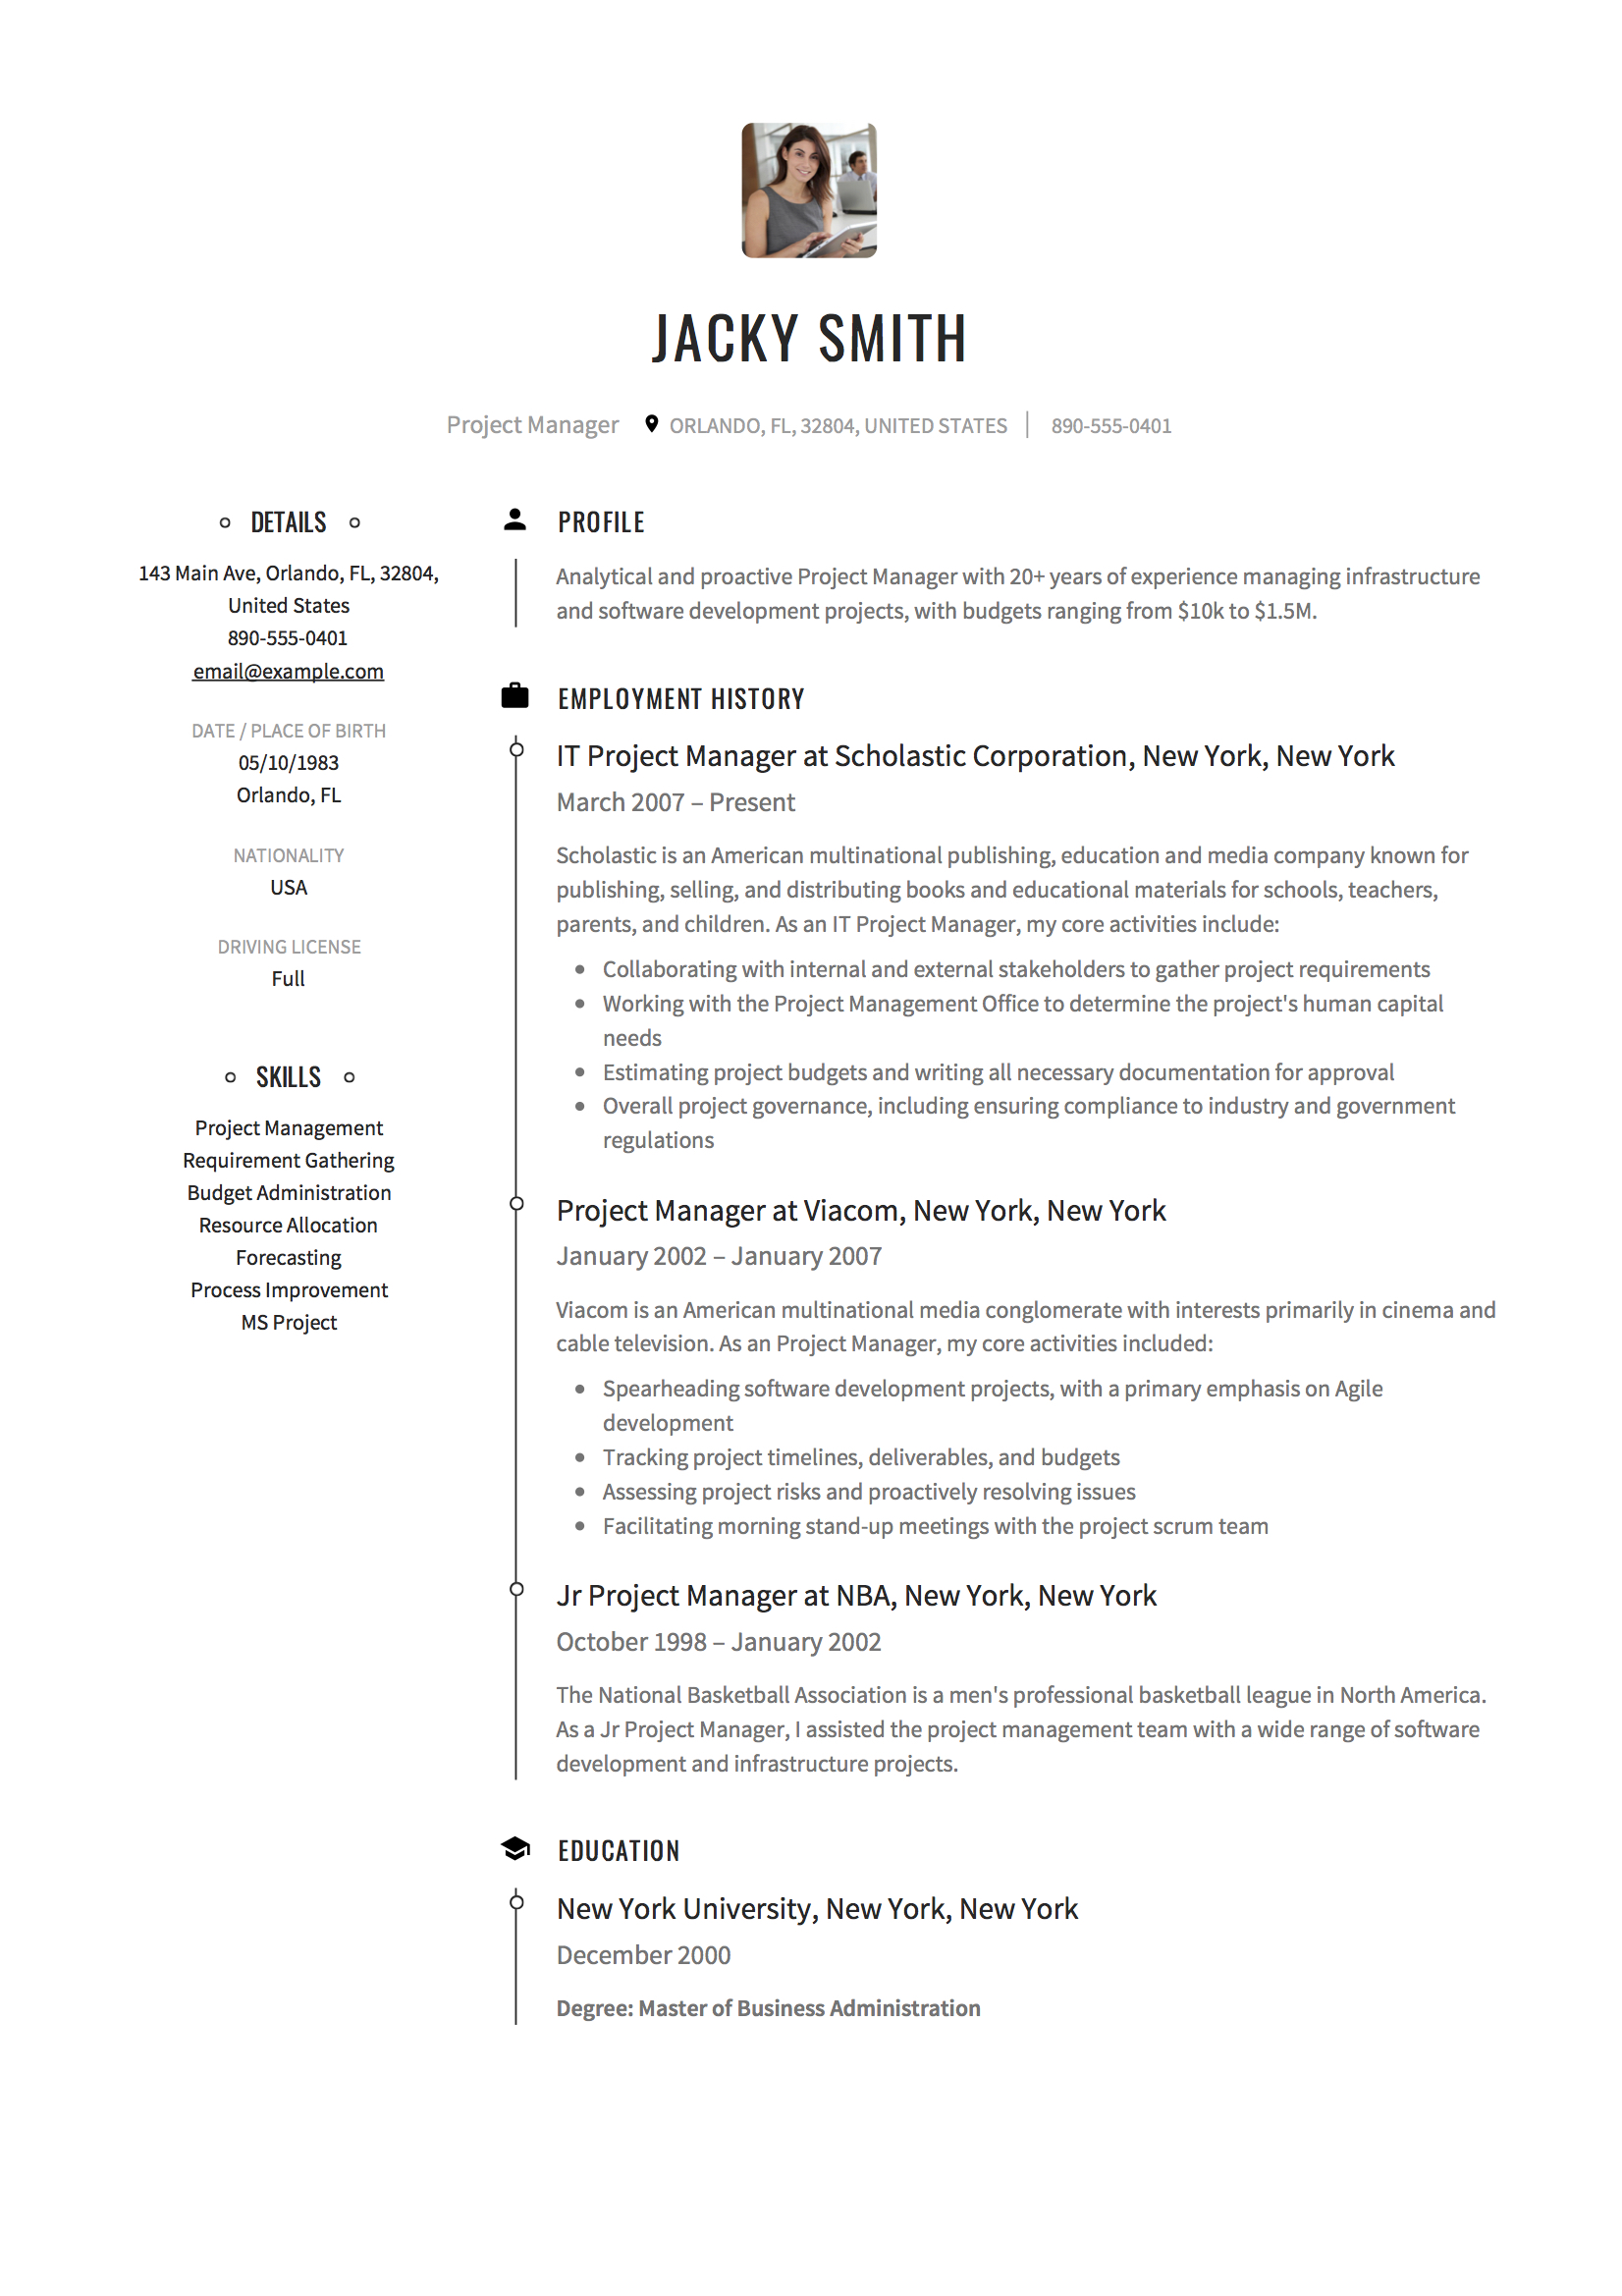 12 project manager resume samples 2018 free downloads project manager resume altavistaventures Image collections